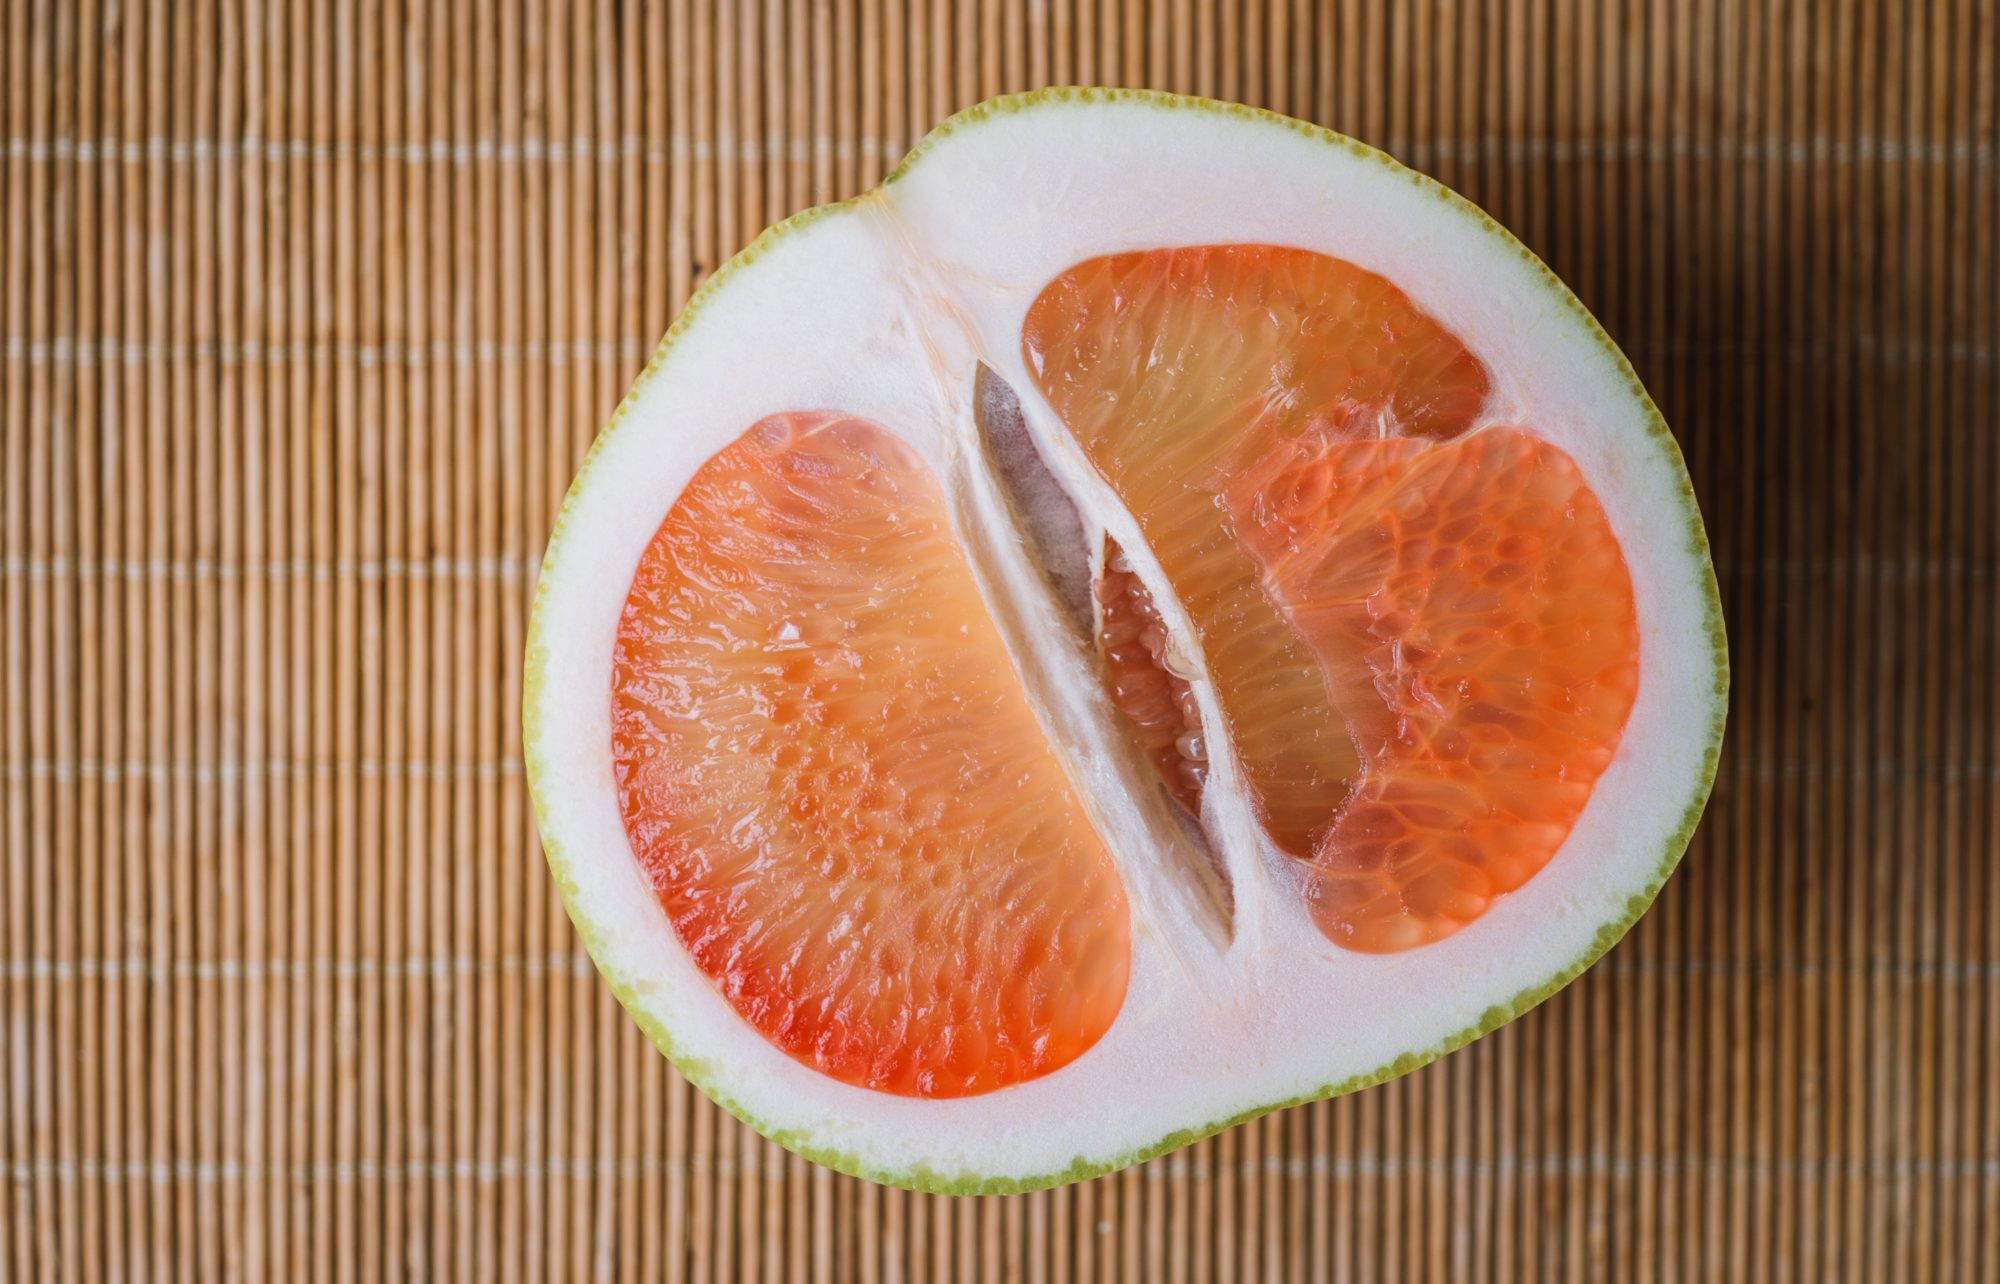 grapefruit-pith-good